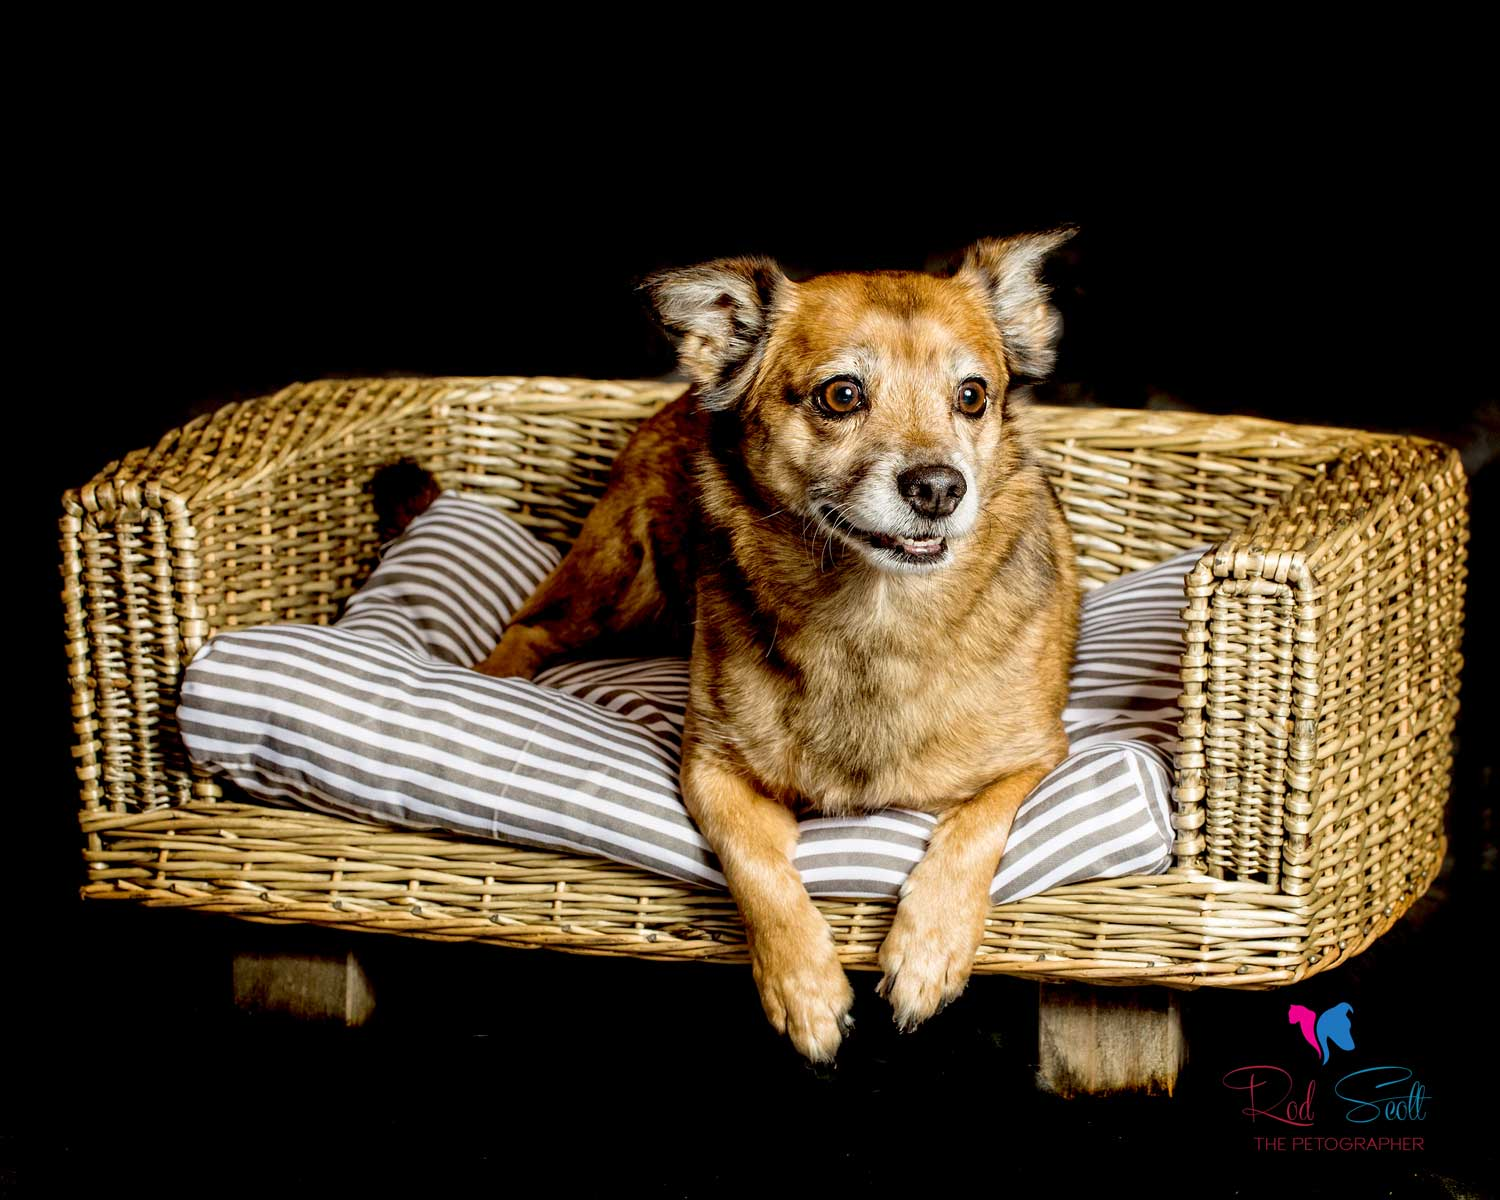 Rod scott pet photography